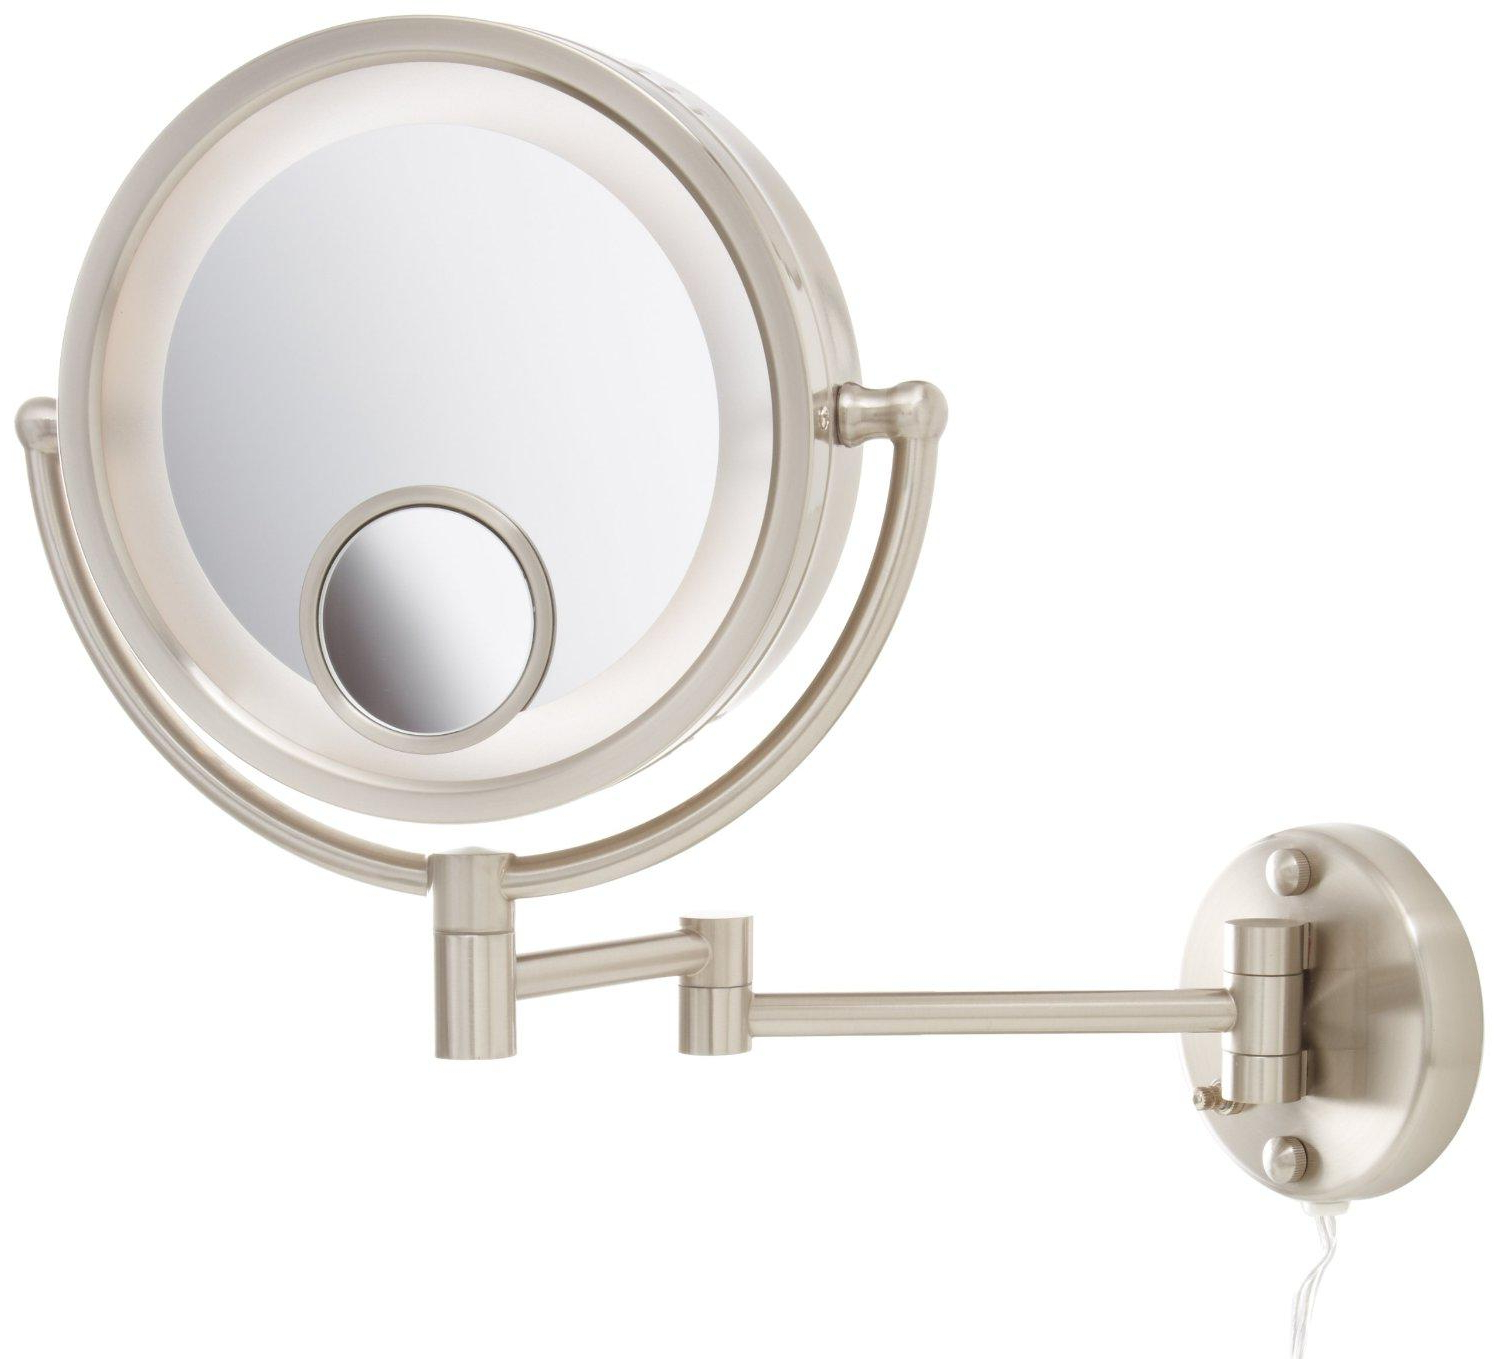 Jerdon Hl8515N Lighted Wall Mount Makeup Mirror With 7X And 15X  Magnification, Nickel Finish,  (View 9 of 20)